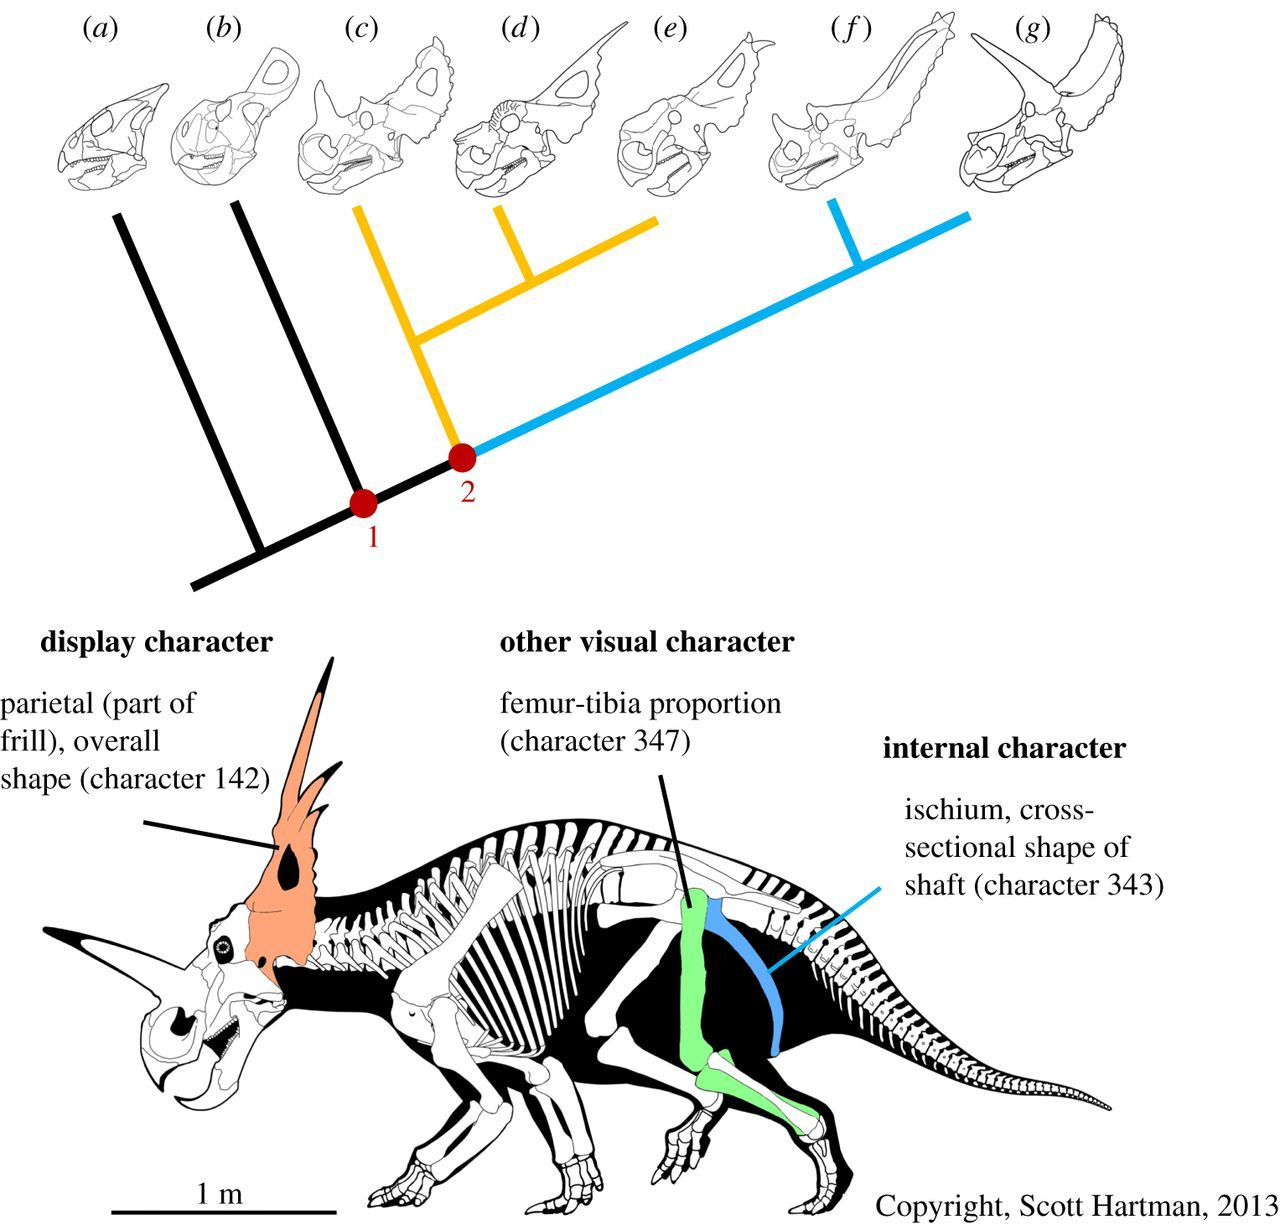 Patterns of divergence in the morphology of ceratopsian